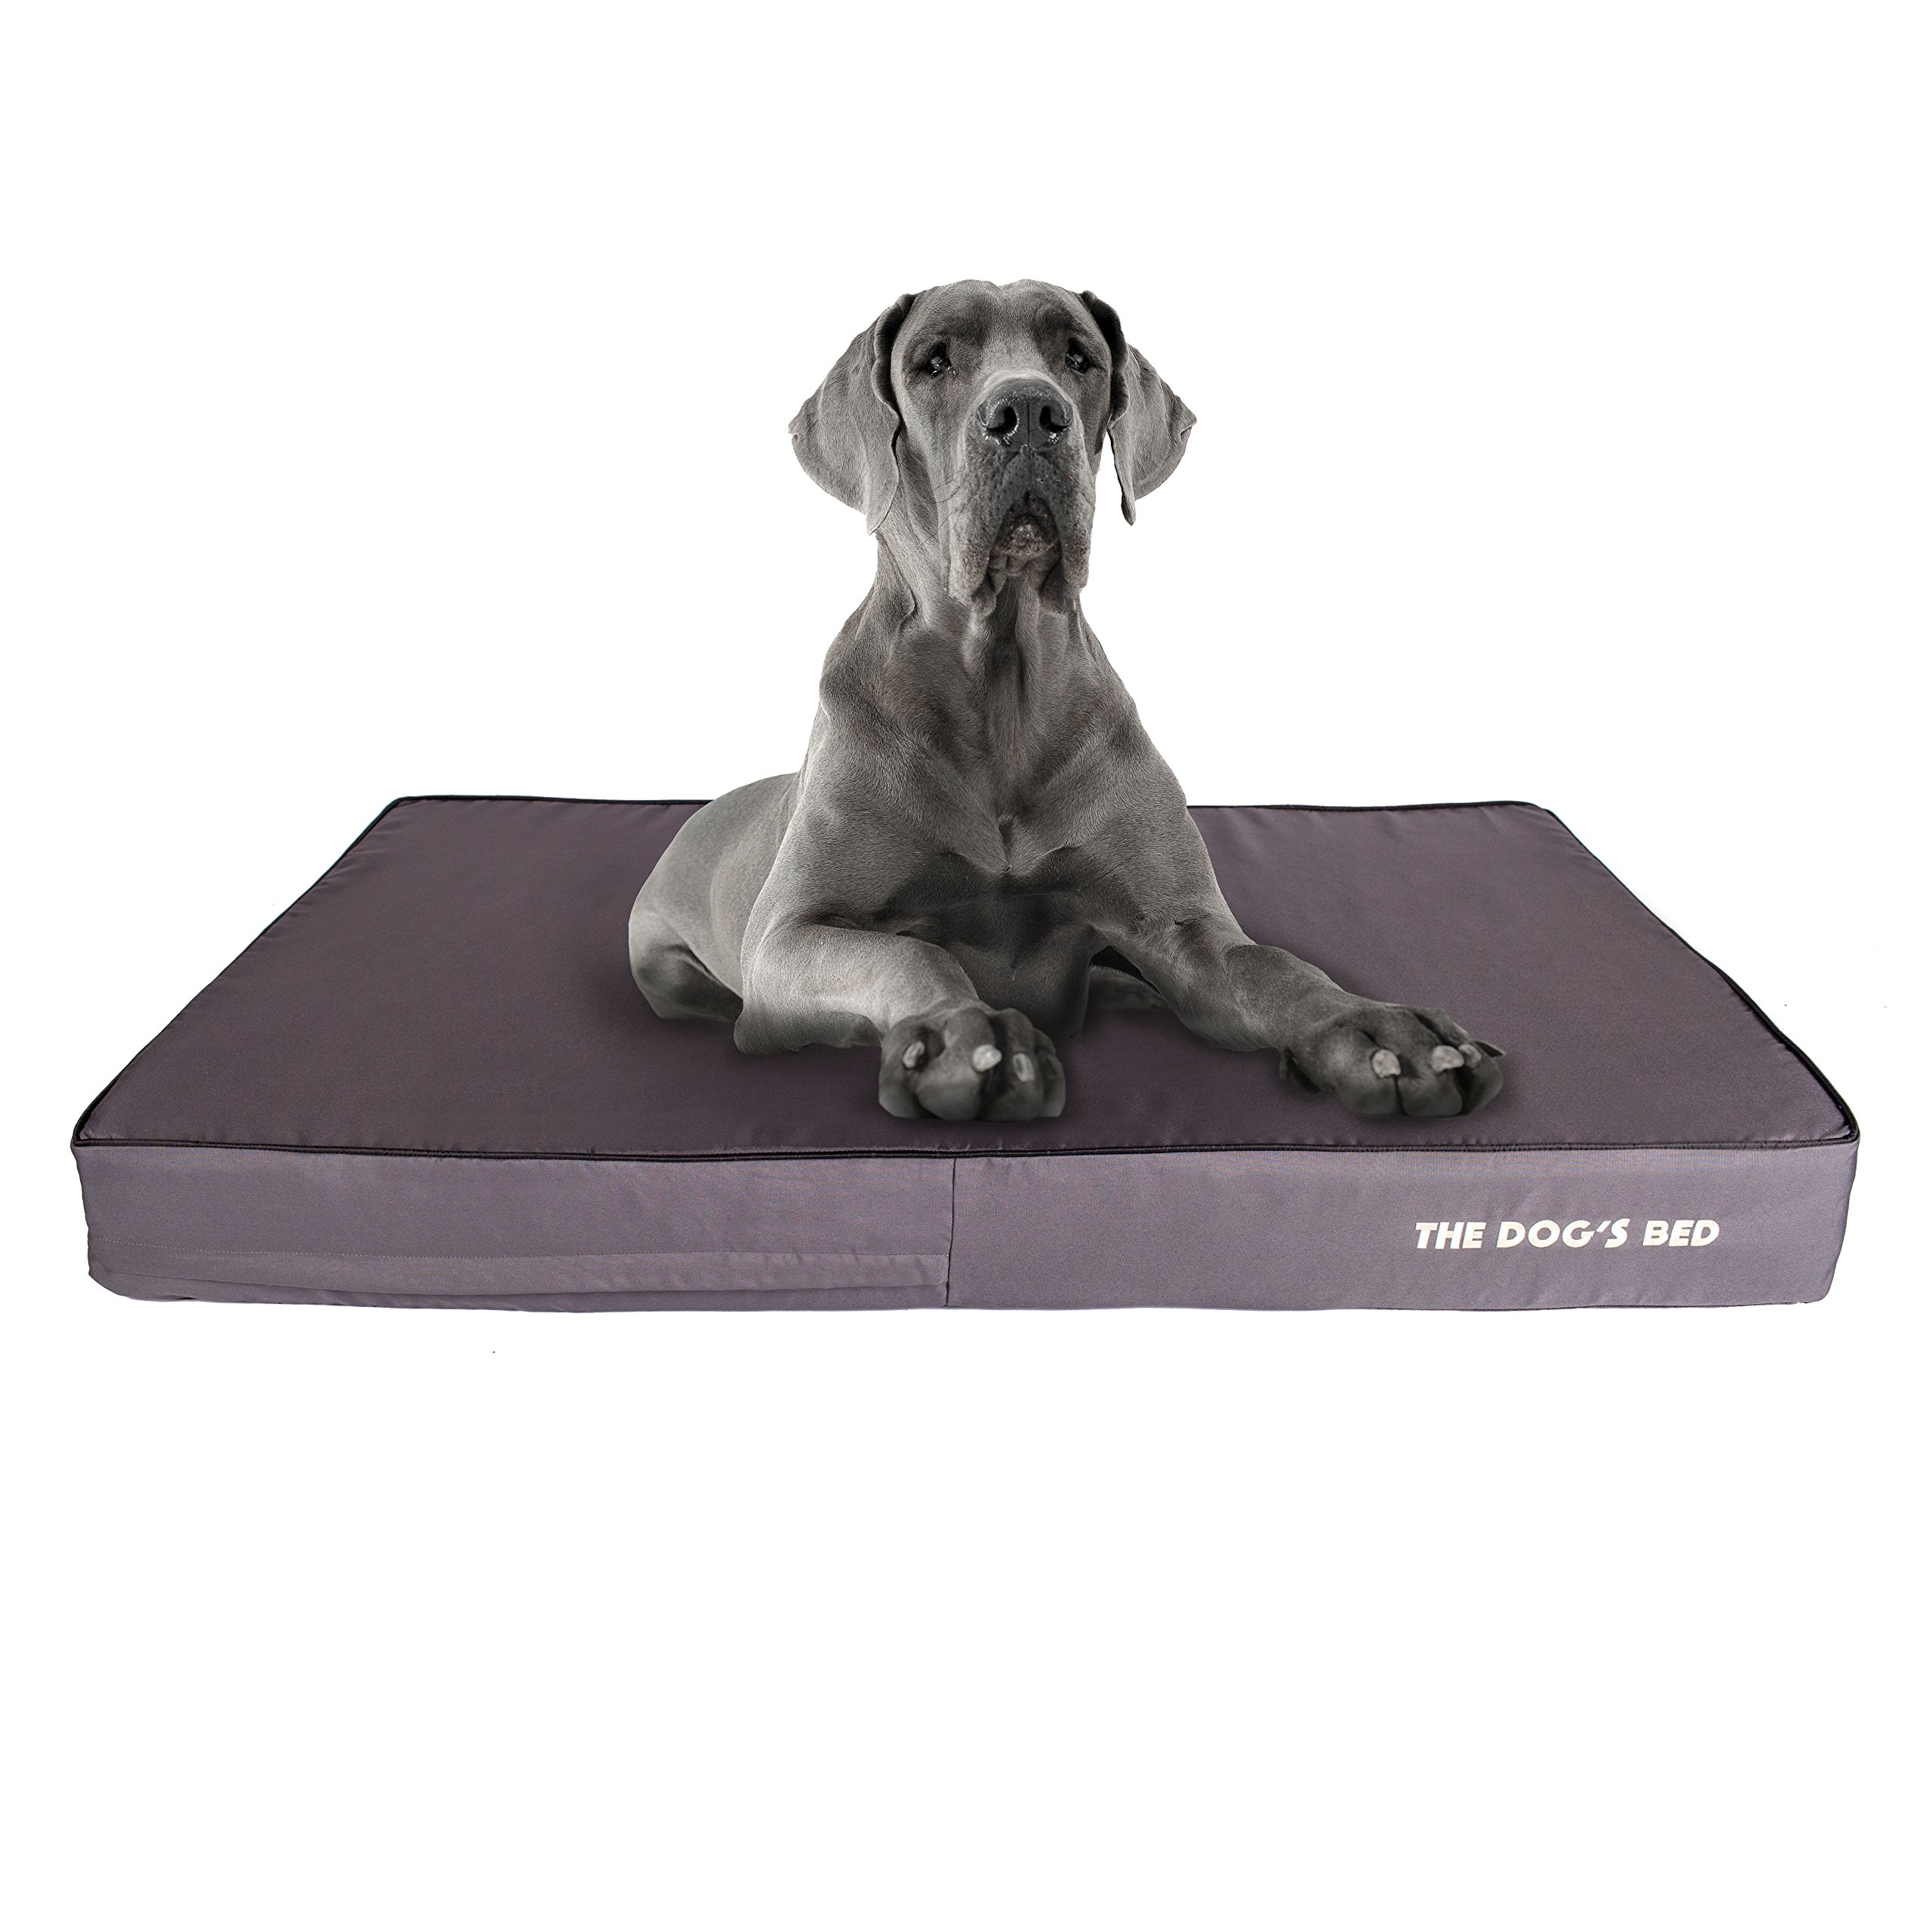 The Dog's Bed, Premium Plush Orthopedic Waterproof Memory Foam Dog Beds, 5 Sizes 8 Colors: Eases Pet Arthritis, Hip Dysplasia & Post Op Pain, Quality Therapeutic & Supportive Bed, Washable Covers